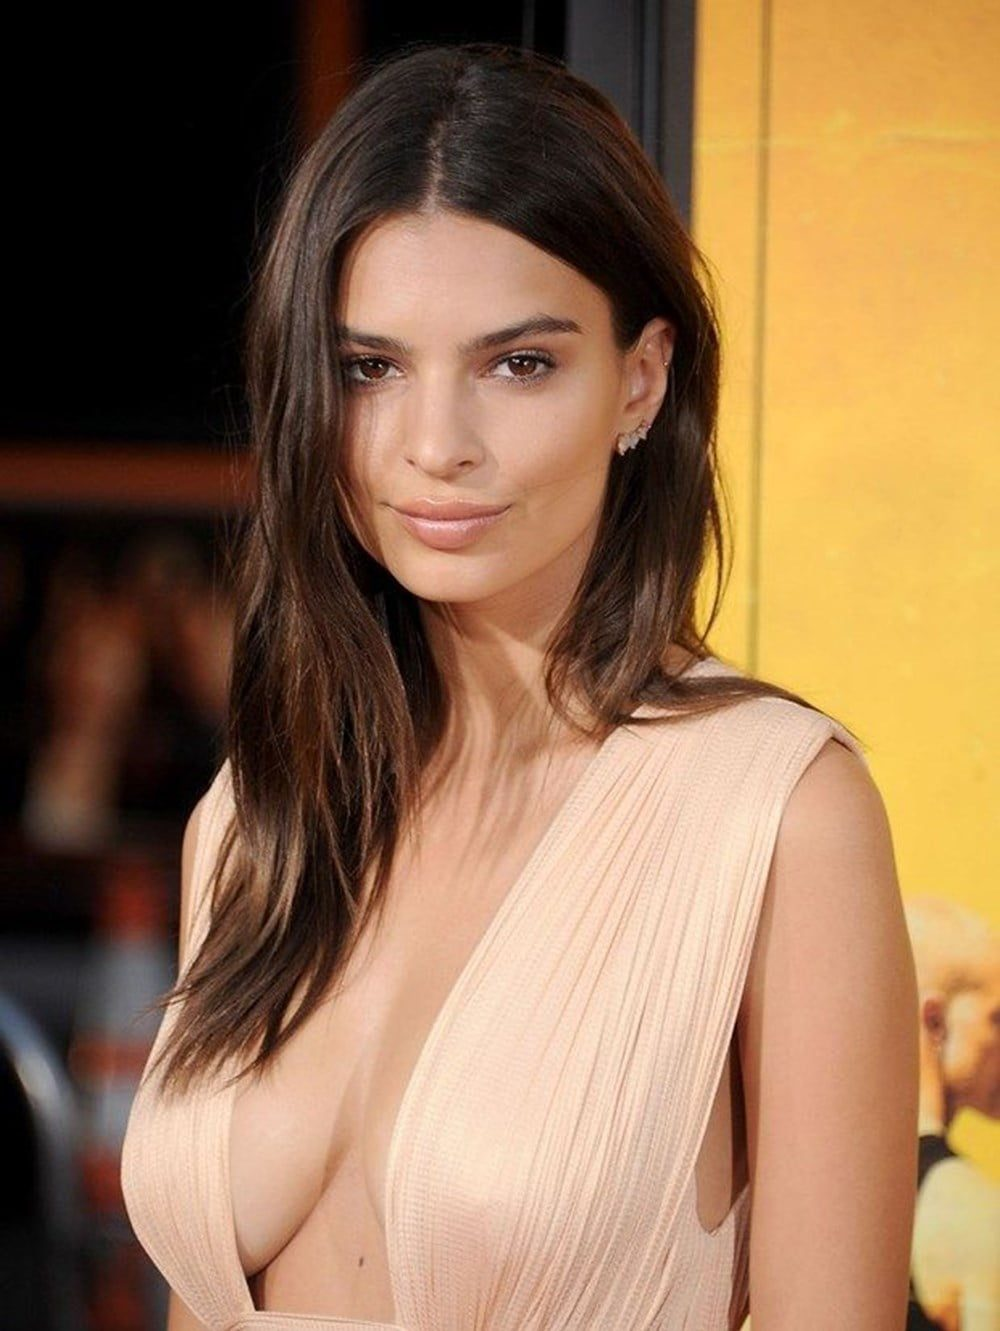 Photos of the popular American model Emily Ratajkowski with her nude work 14